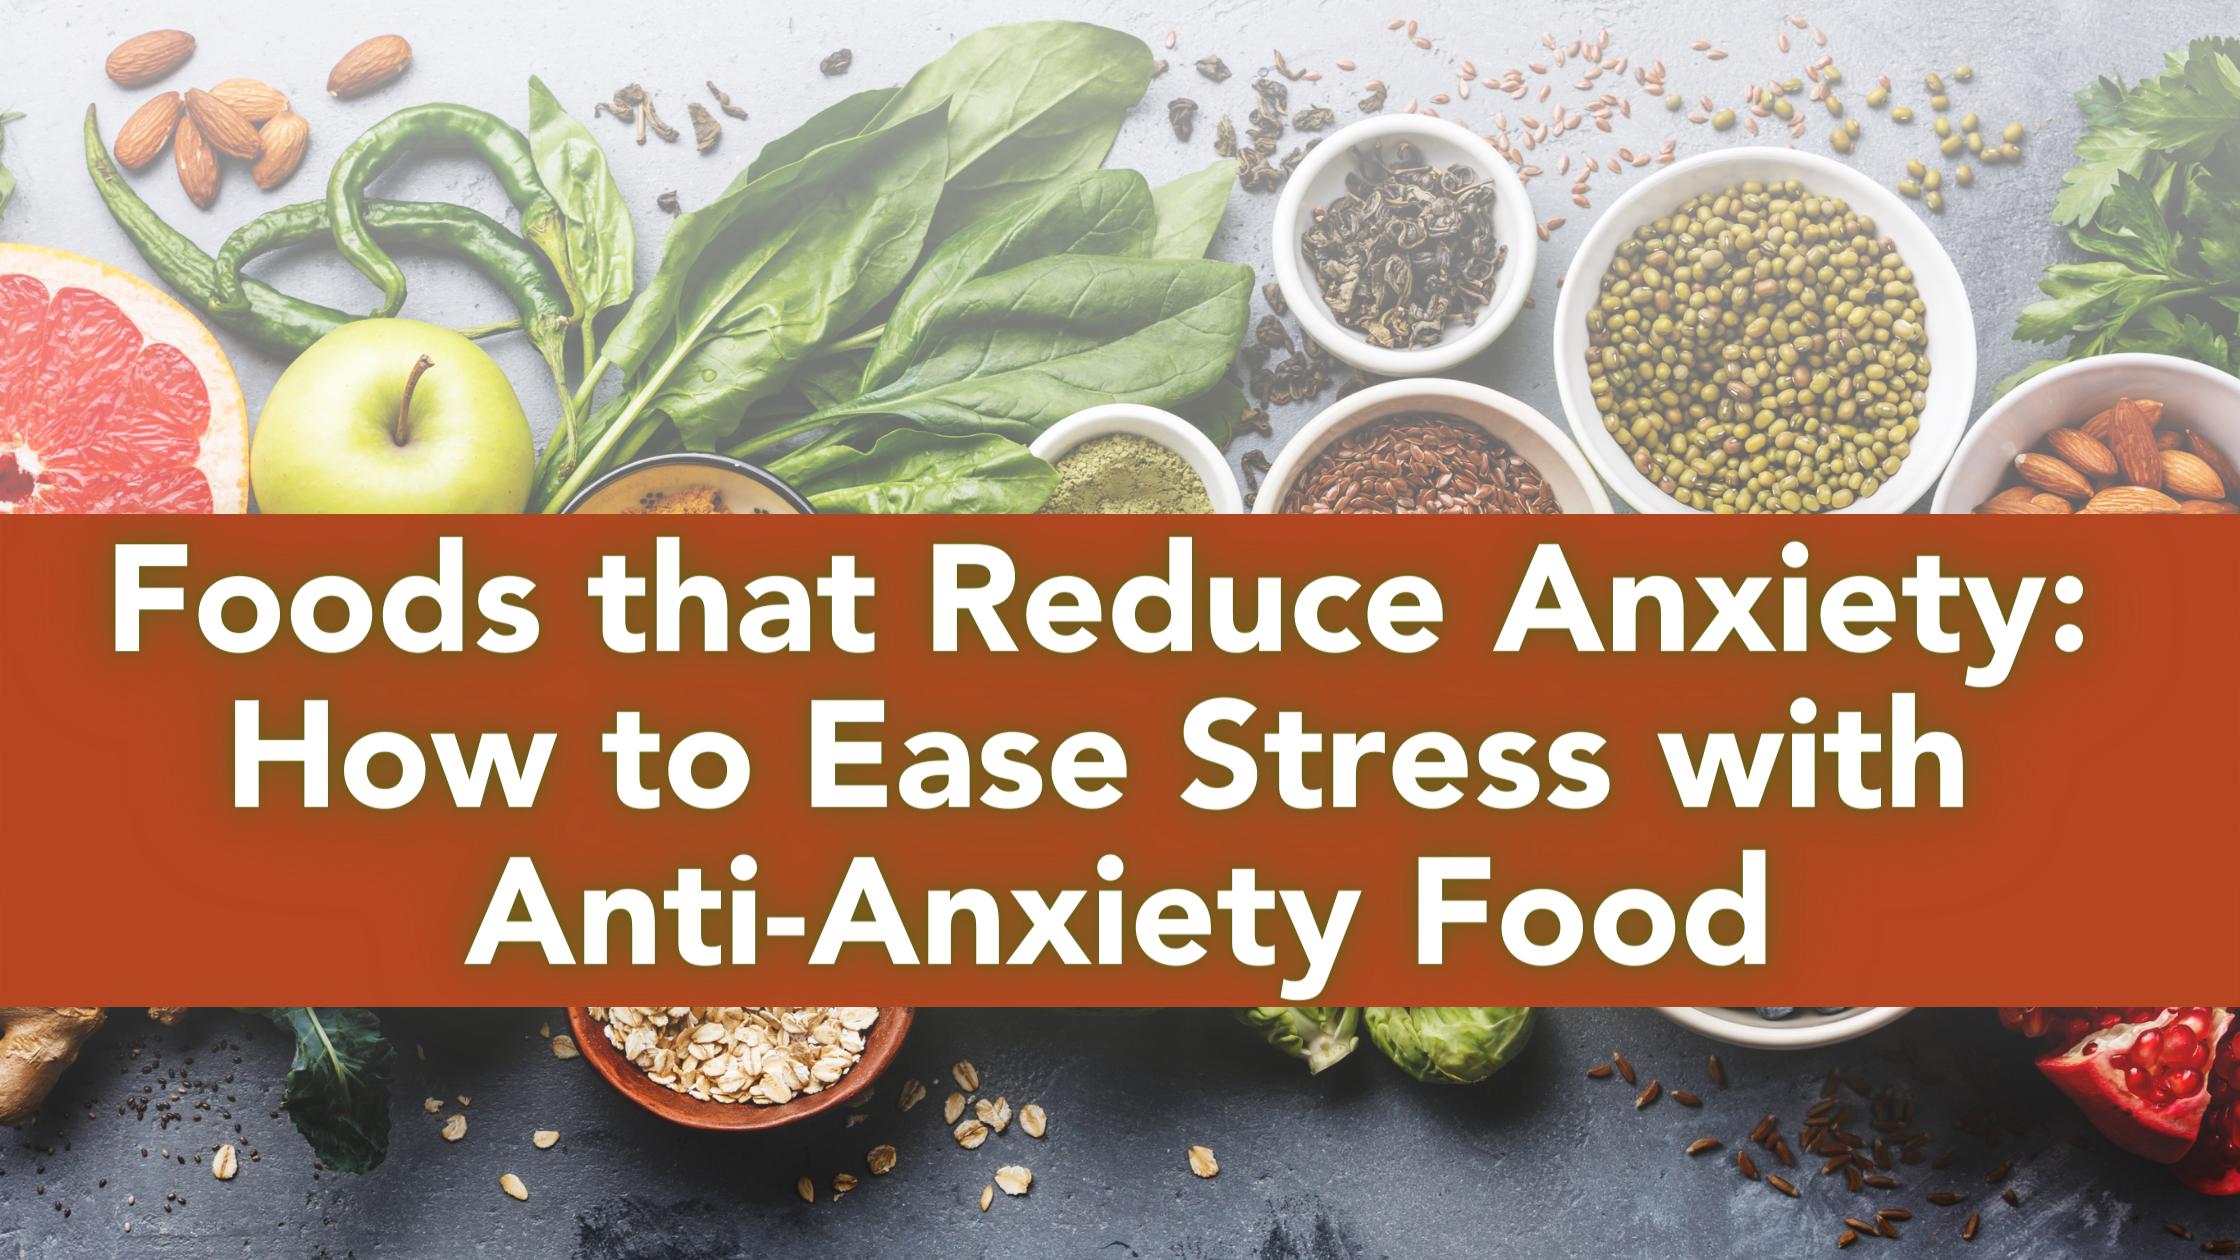 Foods that Reduce Anxiety How to Ease Stress with Anti-Anxiety Food - Blog Header